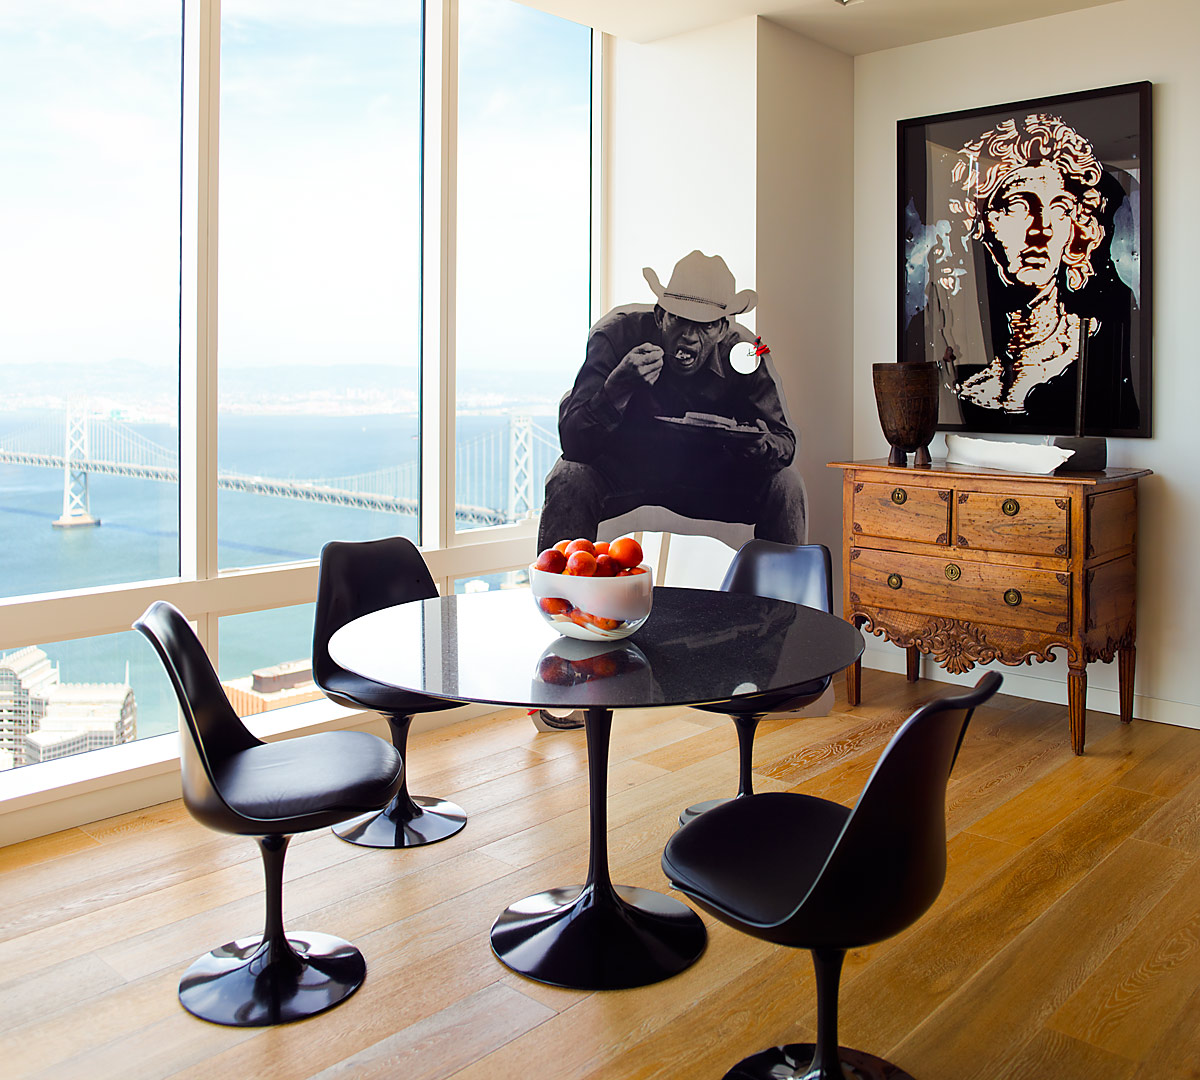 Millennium Tower San Francisco Residence Kitchen Table - interior design by BAMO